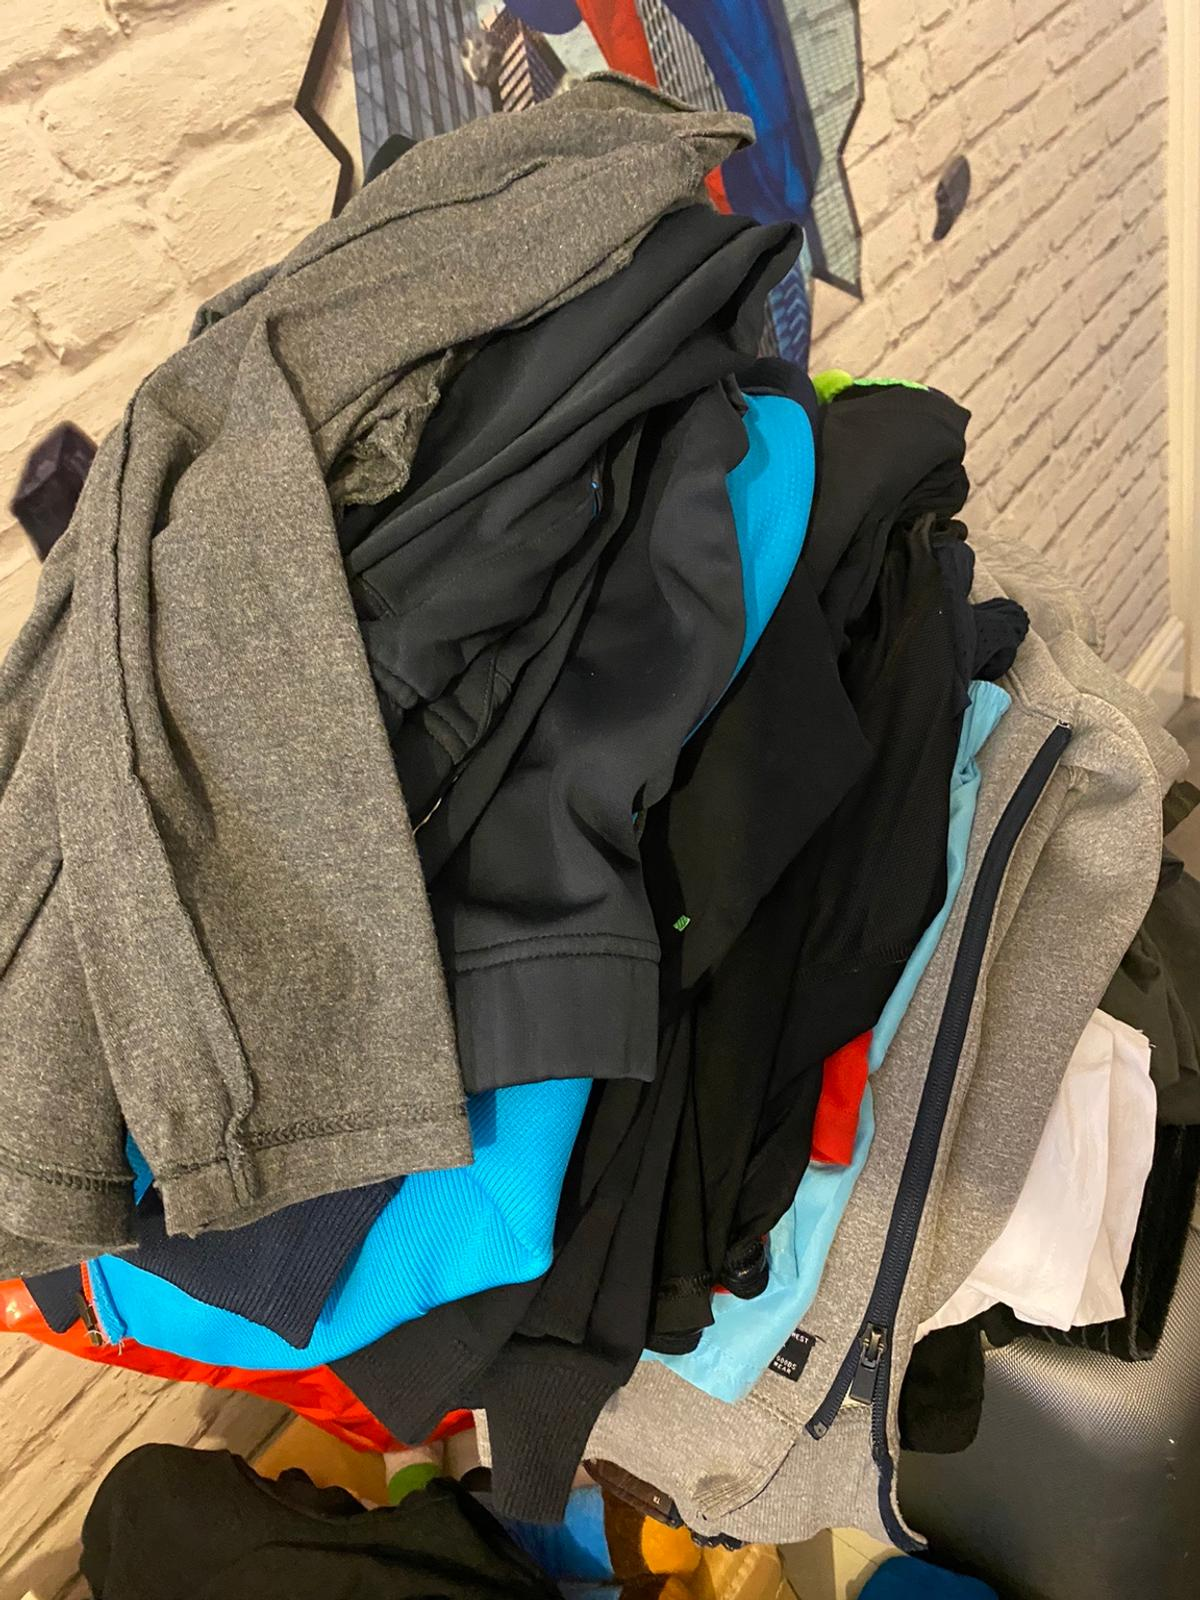 Mixed items tshirts sweaters Tracksuits Shorts Jeans Back pack x2 Regretta rain jacket an pants From Zara,Hugo boss,Nike,Adidas,under armour etc All for £25 bin bag full just need gone